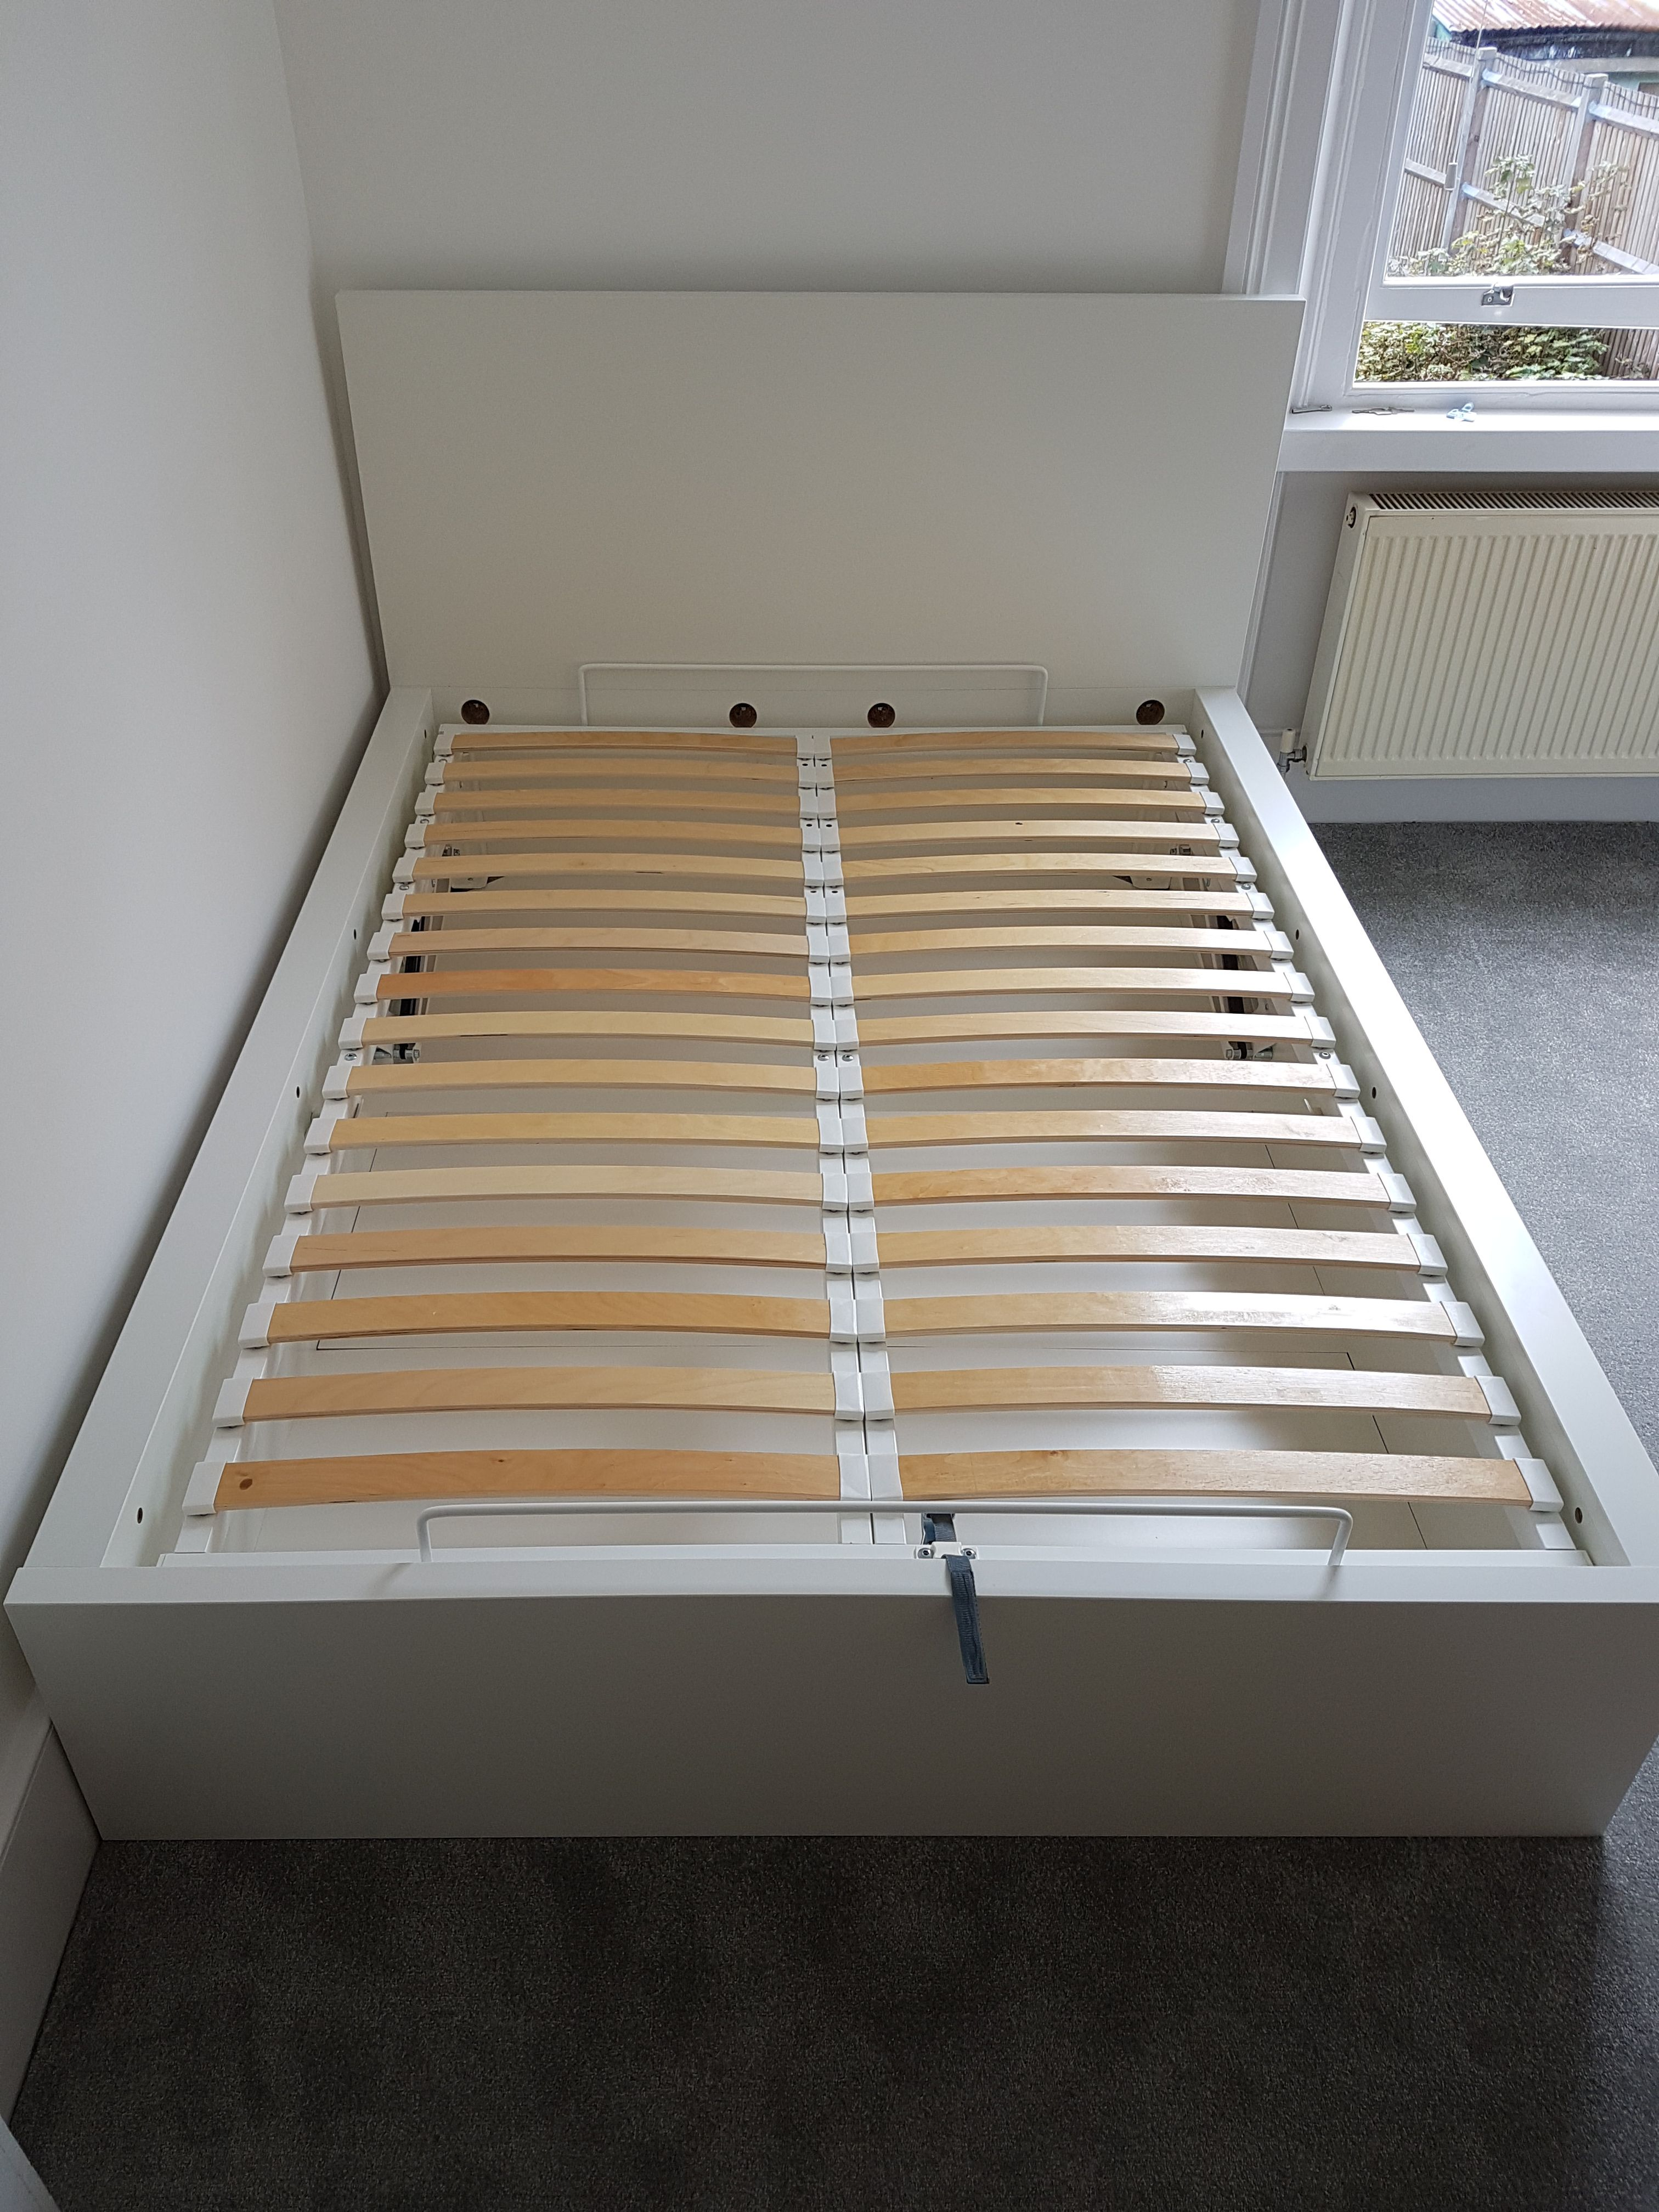 Amazing Ikea Malm Ottoman Bed With A Storage Space Ikea Gmtry Best Dining Table And Chair Ideas Images Gmtryco